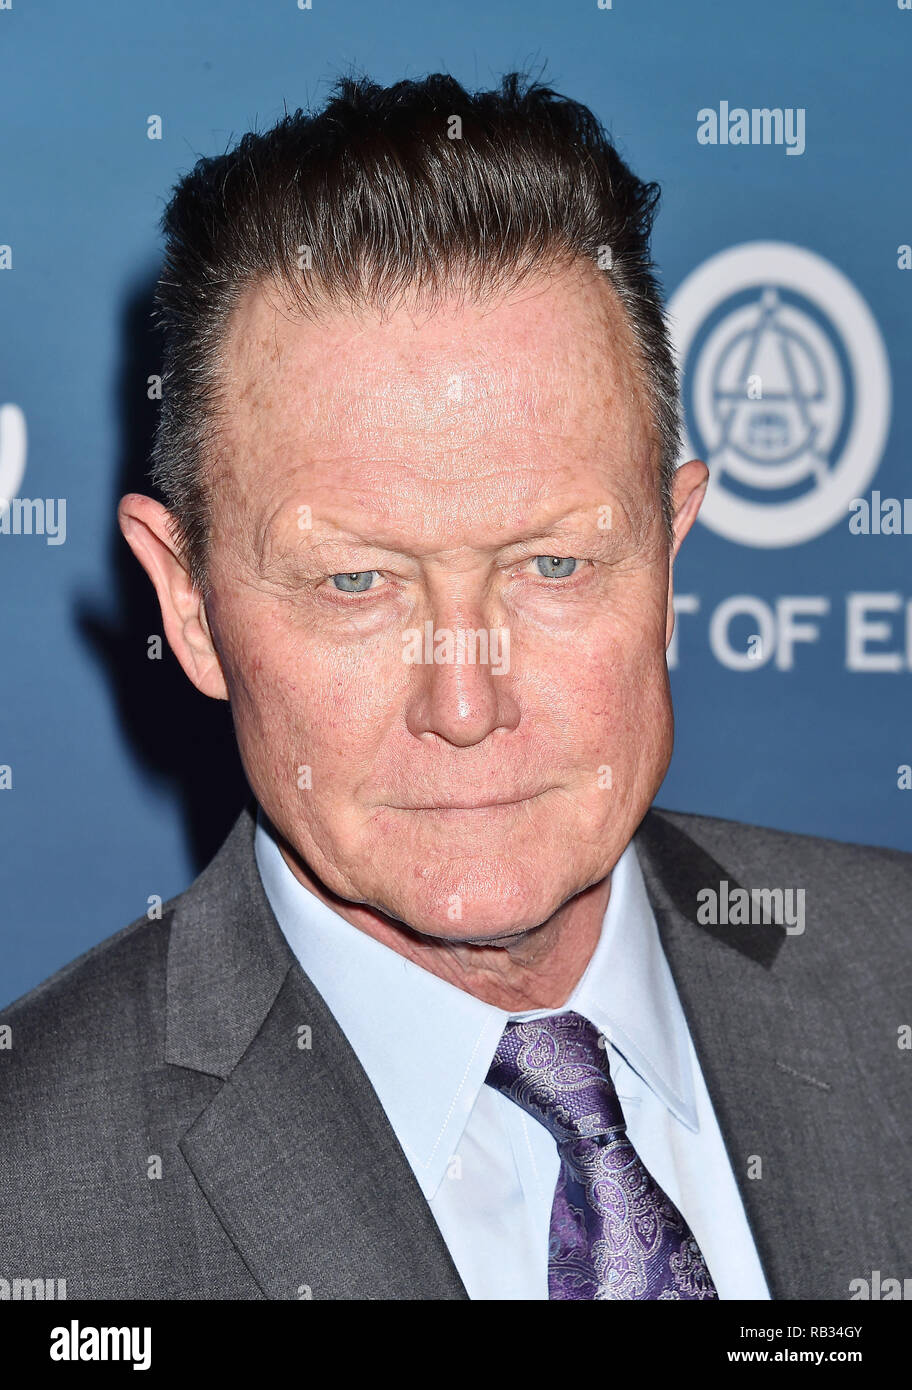 Los Angeles, USA. 5 January 2019. Robert Patrick attends Michael Muller's HEAVEN, presented by The Art of Elysium at a private venue on January 5, 2019 in Los Angeles, California. Credit: Jeffrey Mayer/Alamy Live News - Stock Image